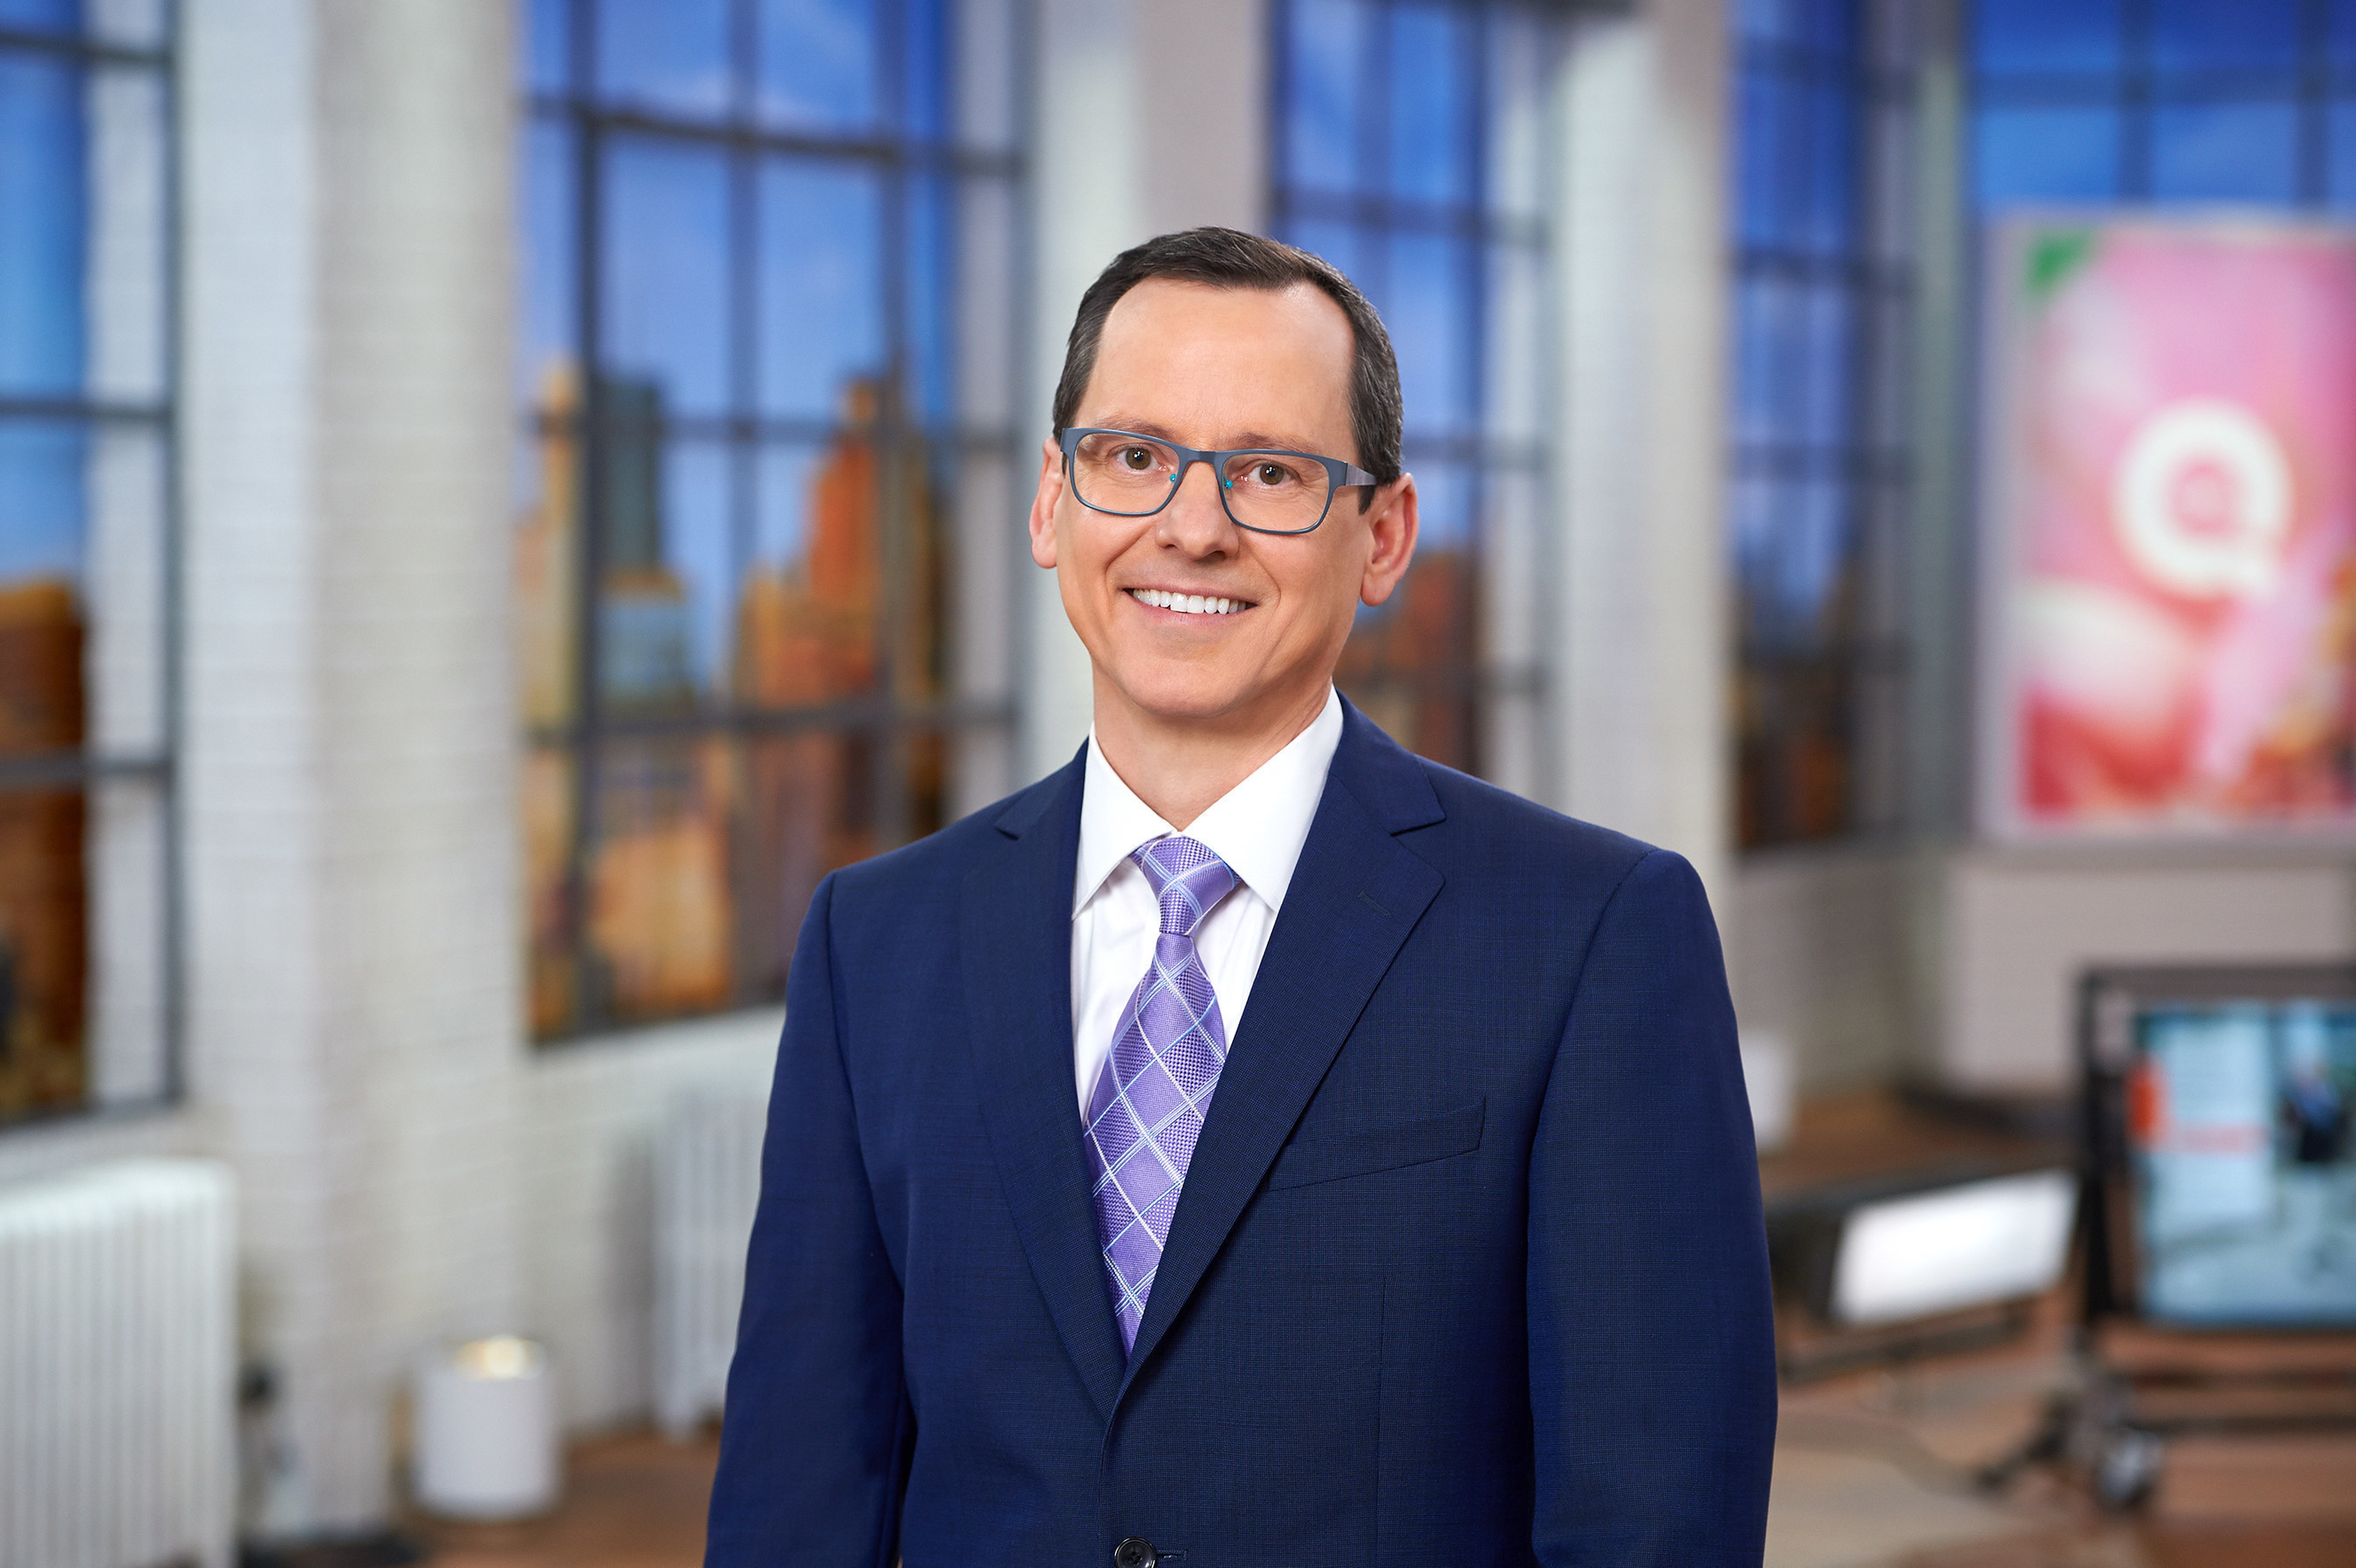 QVC Appoints Todd Sprinkle to Lead Global Information Technology as Chief Information Officer